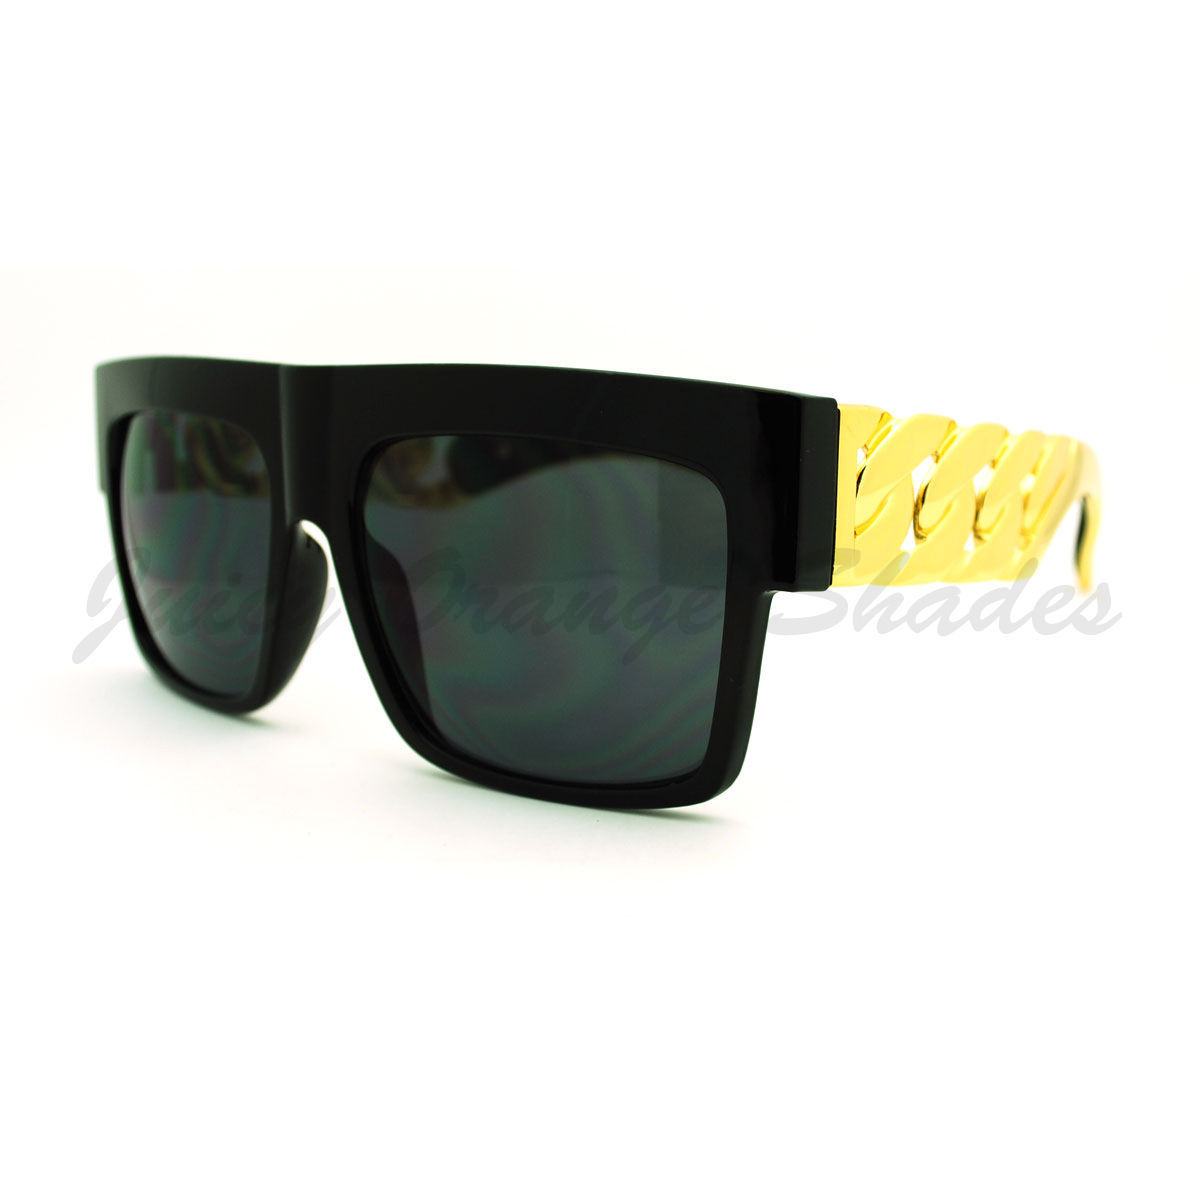 Designer Fashion Sunglasses Bold Flat Top Thick Gold Chain Frame